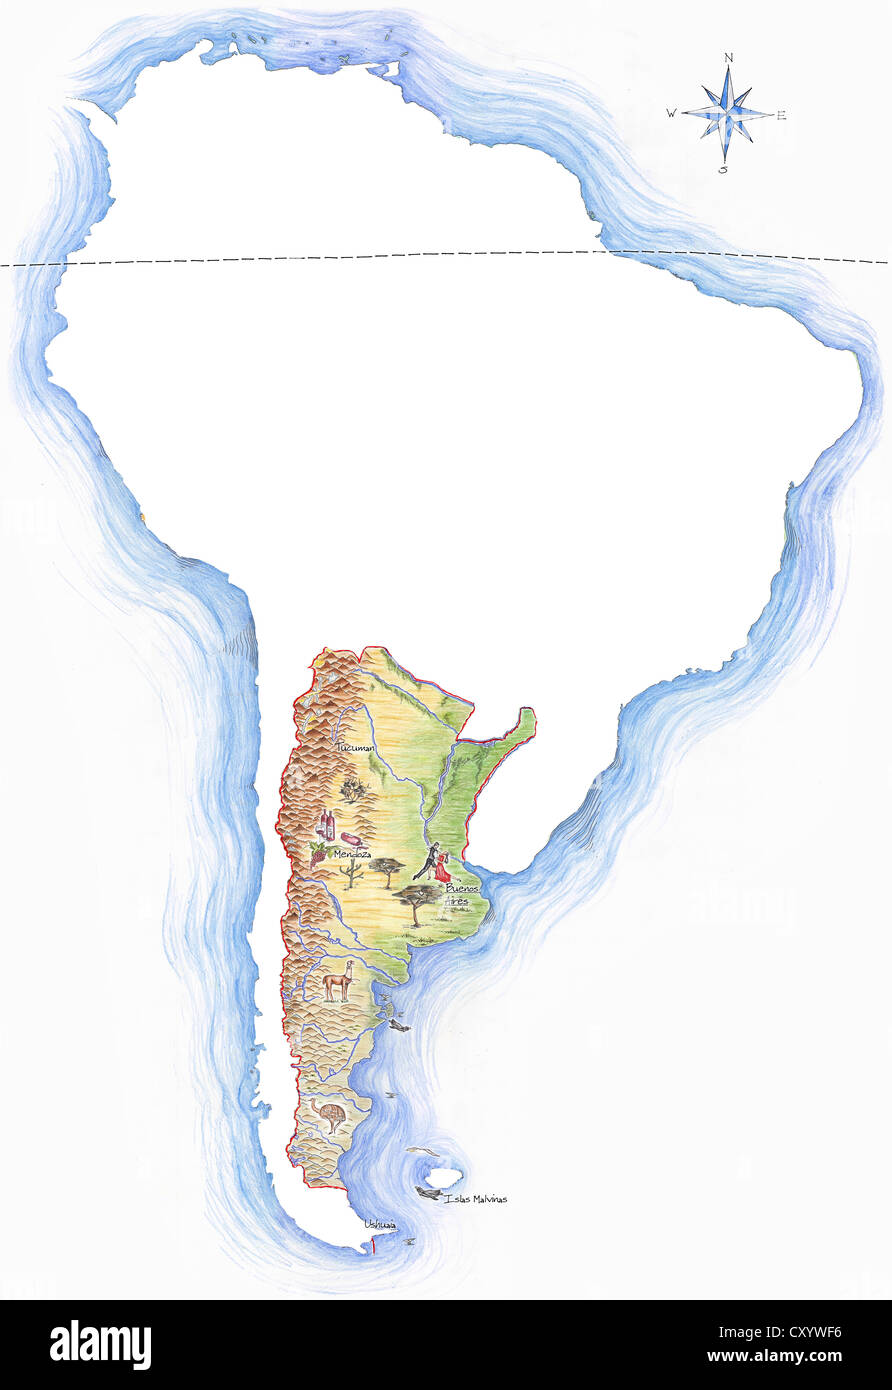 Highly detailed hand drawn map of Argentina within the outline of